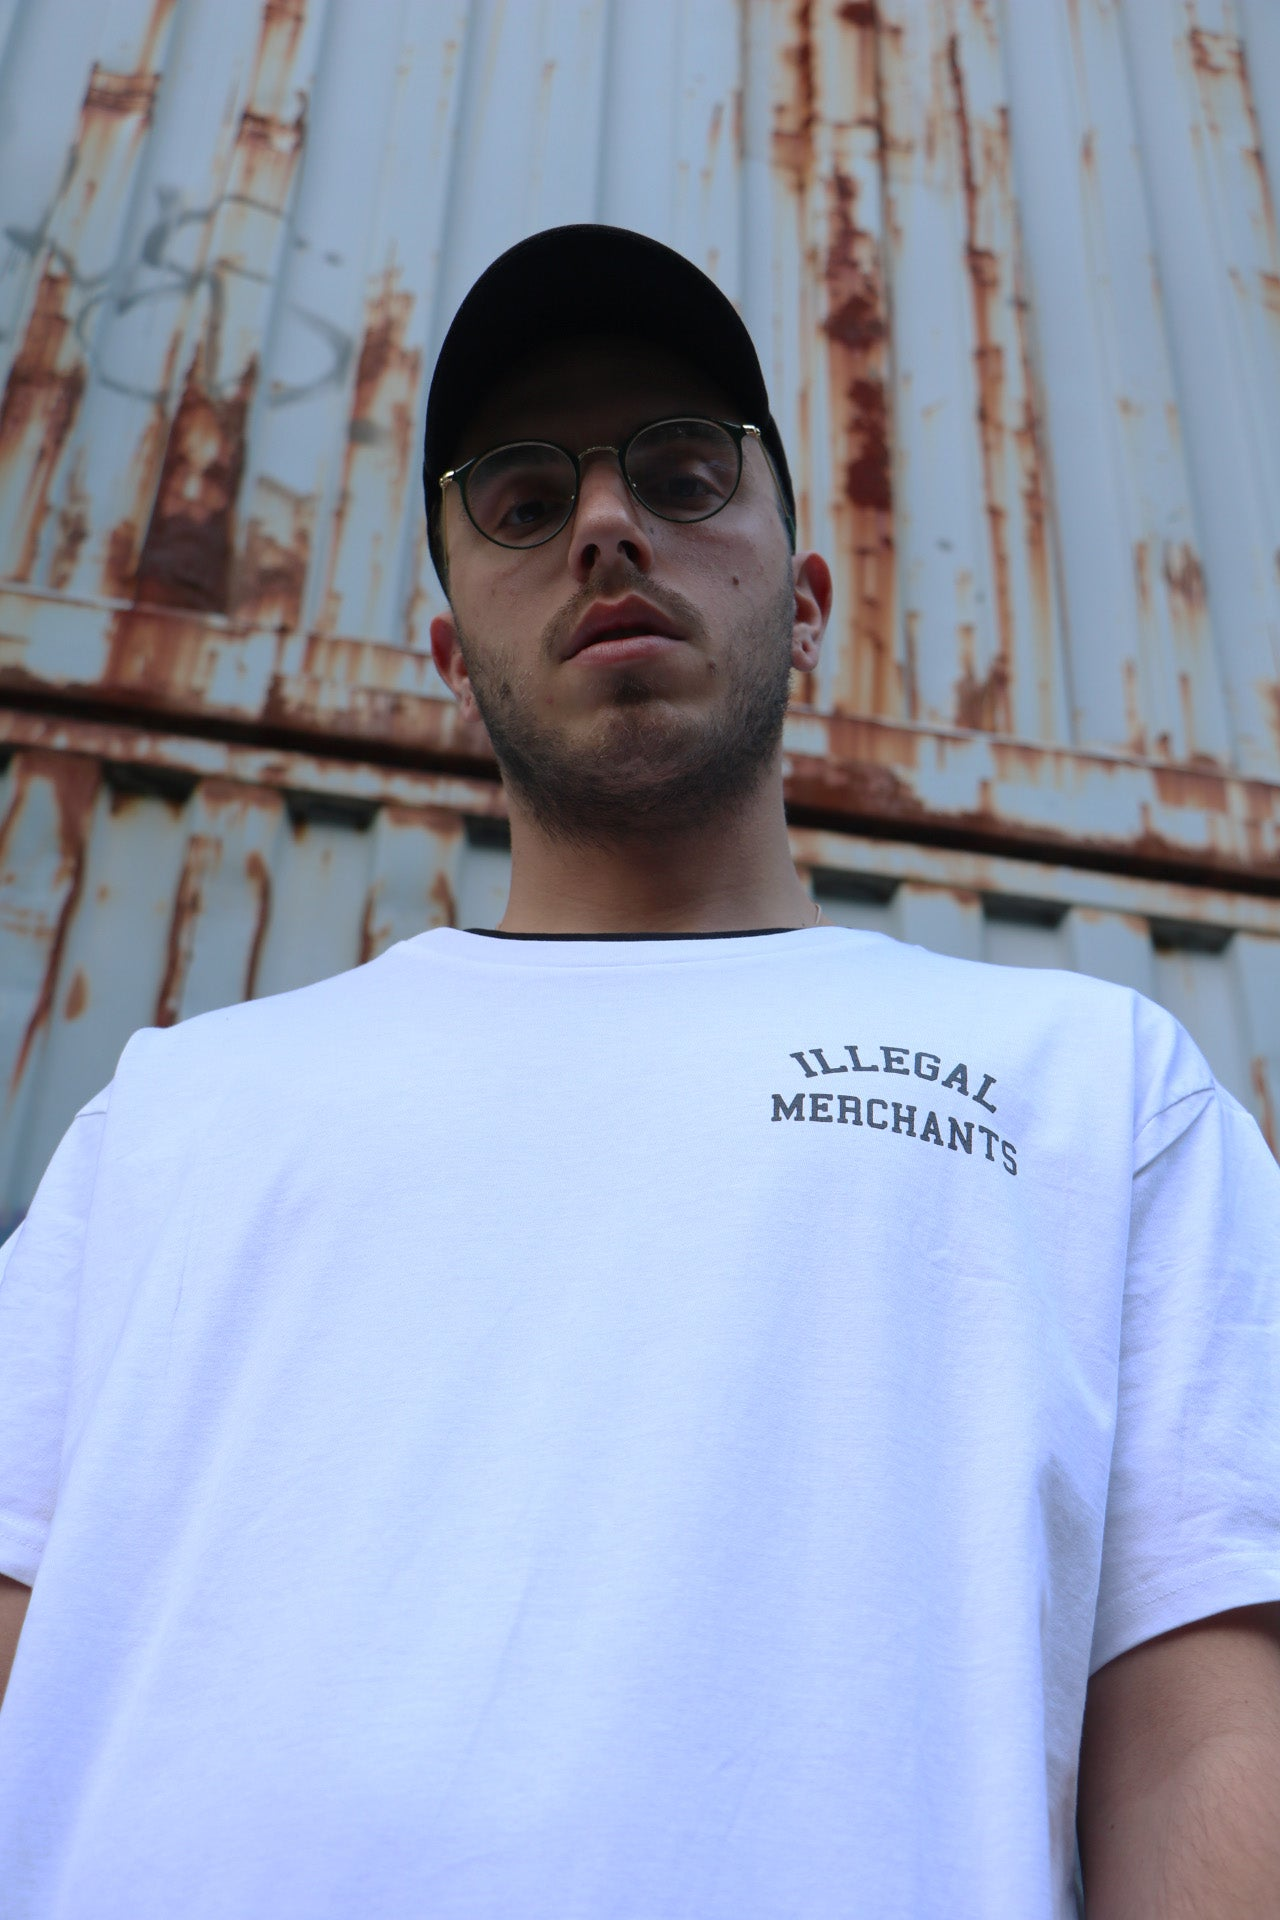 ILLEGAL MERCHANTS TEE V4NY